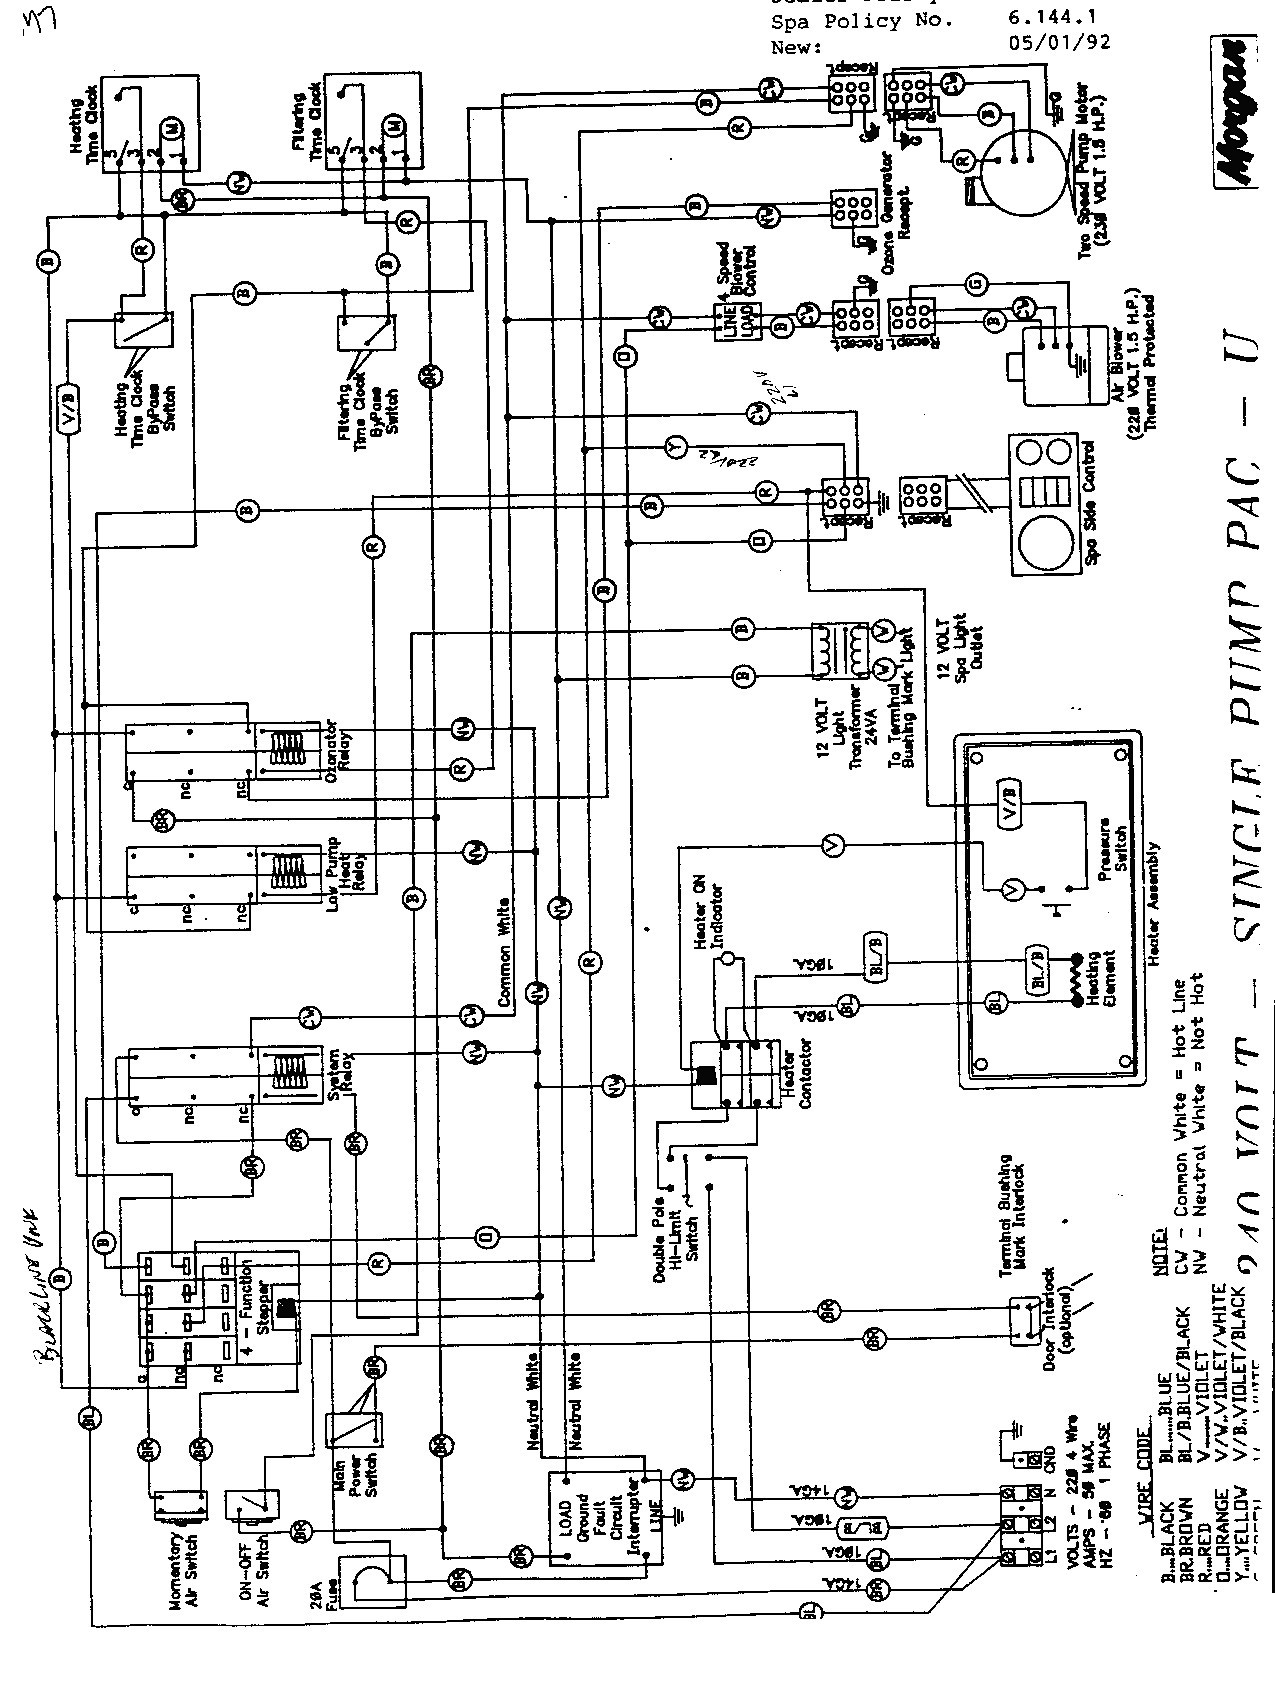 Hot Tub Wiring Diagram Lovely 220v Hot Tub Wiring Diagram and E4e7c8 Agnitum Me Wire